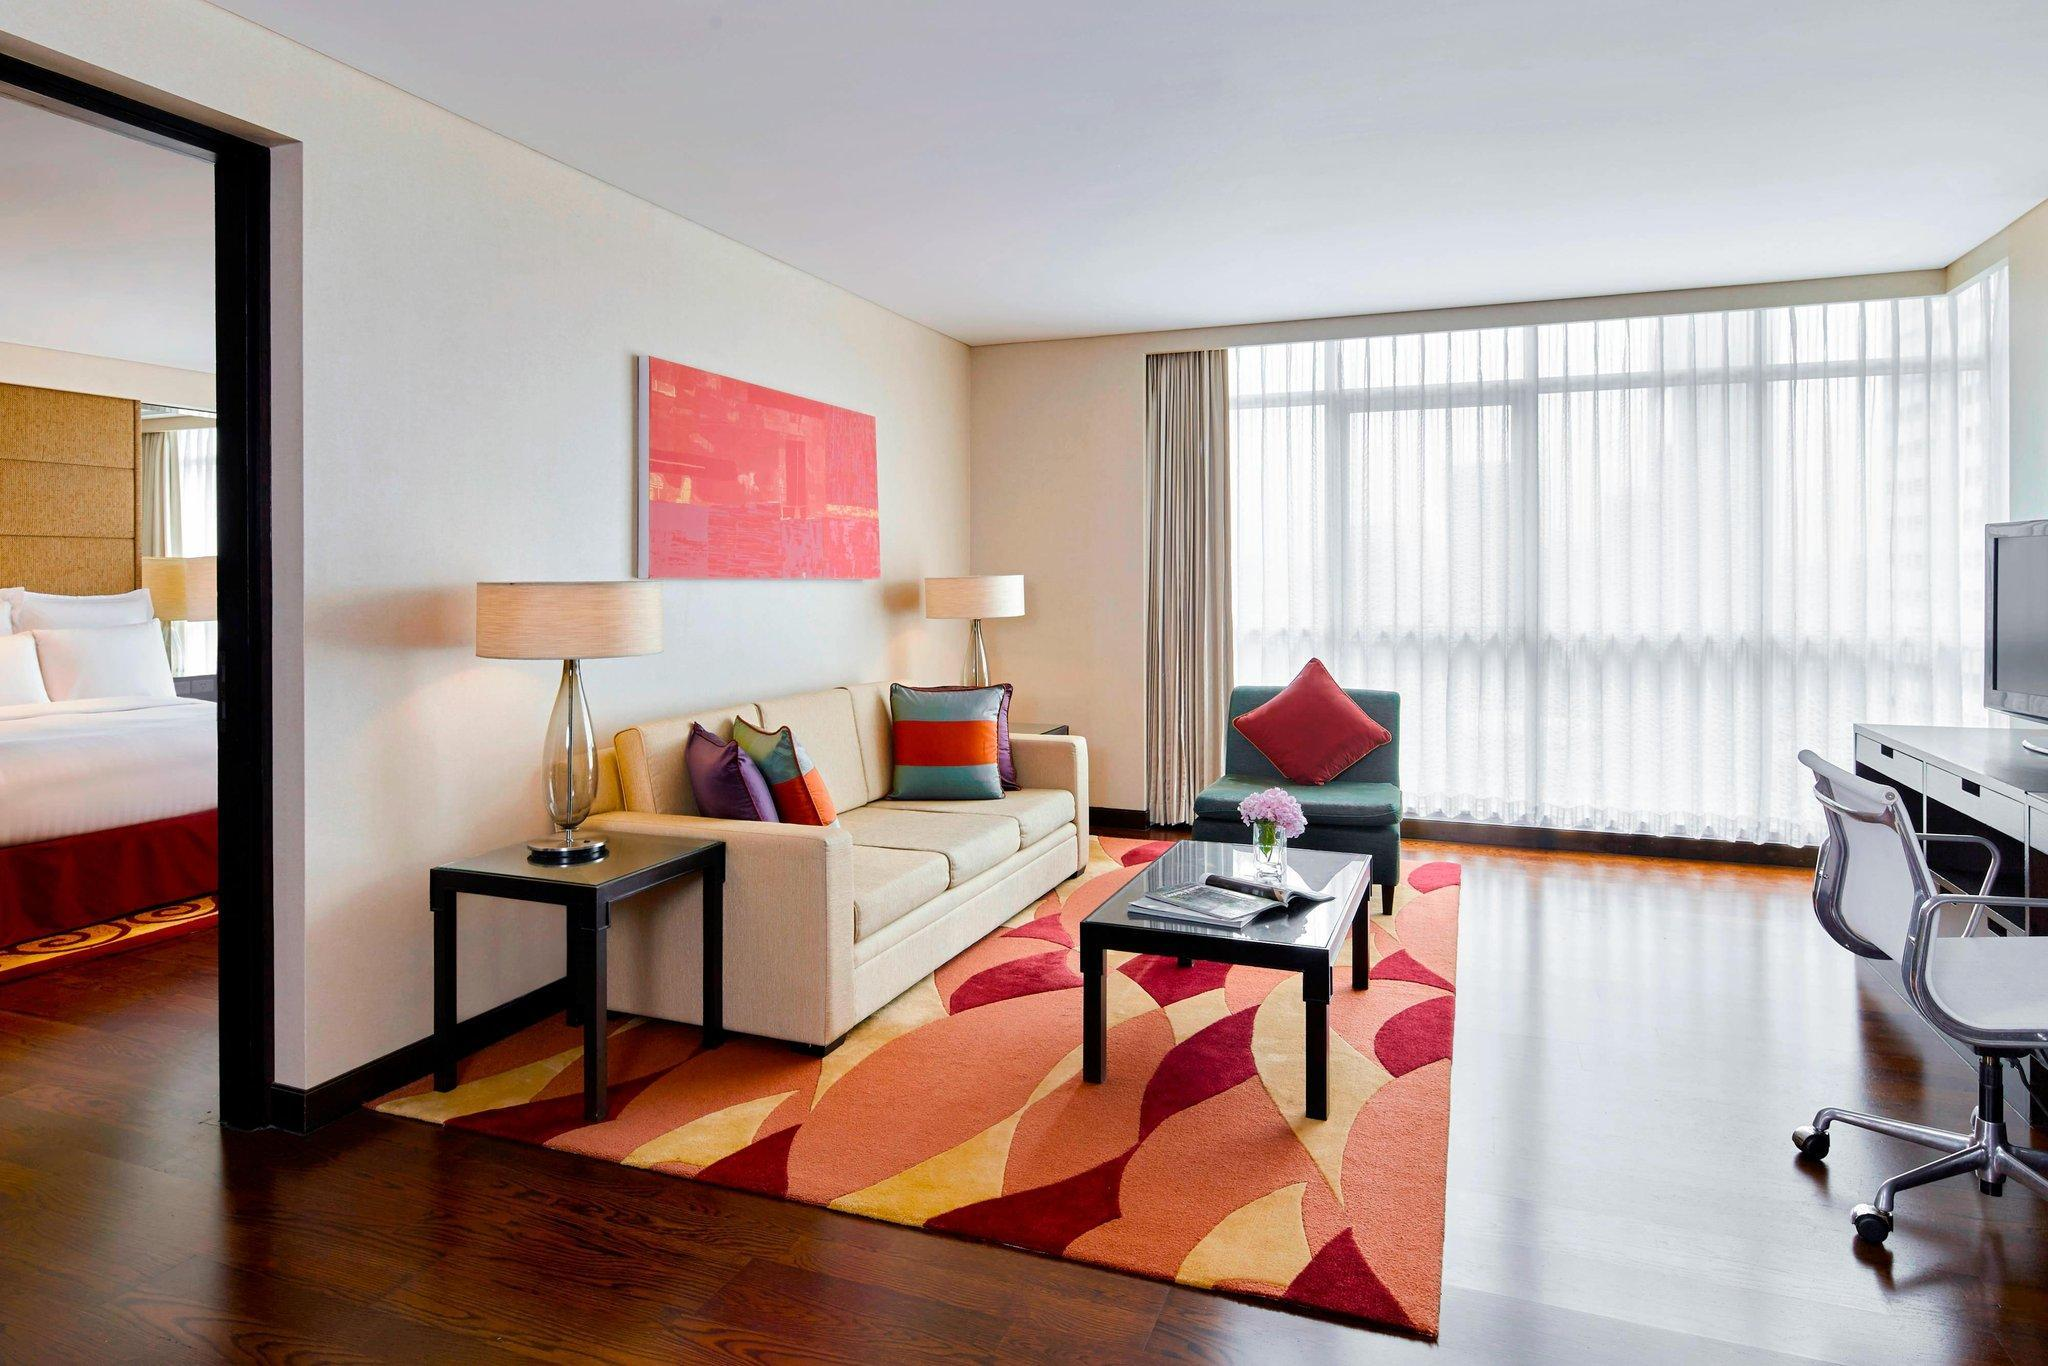 1-Bedroom Deluxe City View Suite with King Bed (1 Bedroom Deluxe Suite, 1 Bedroom Suite, 1 King, City view)